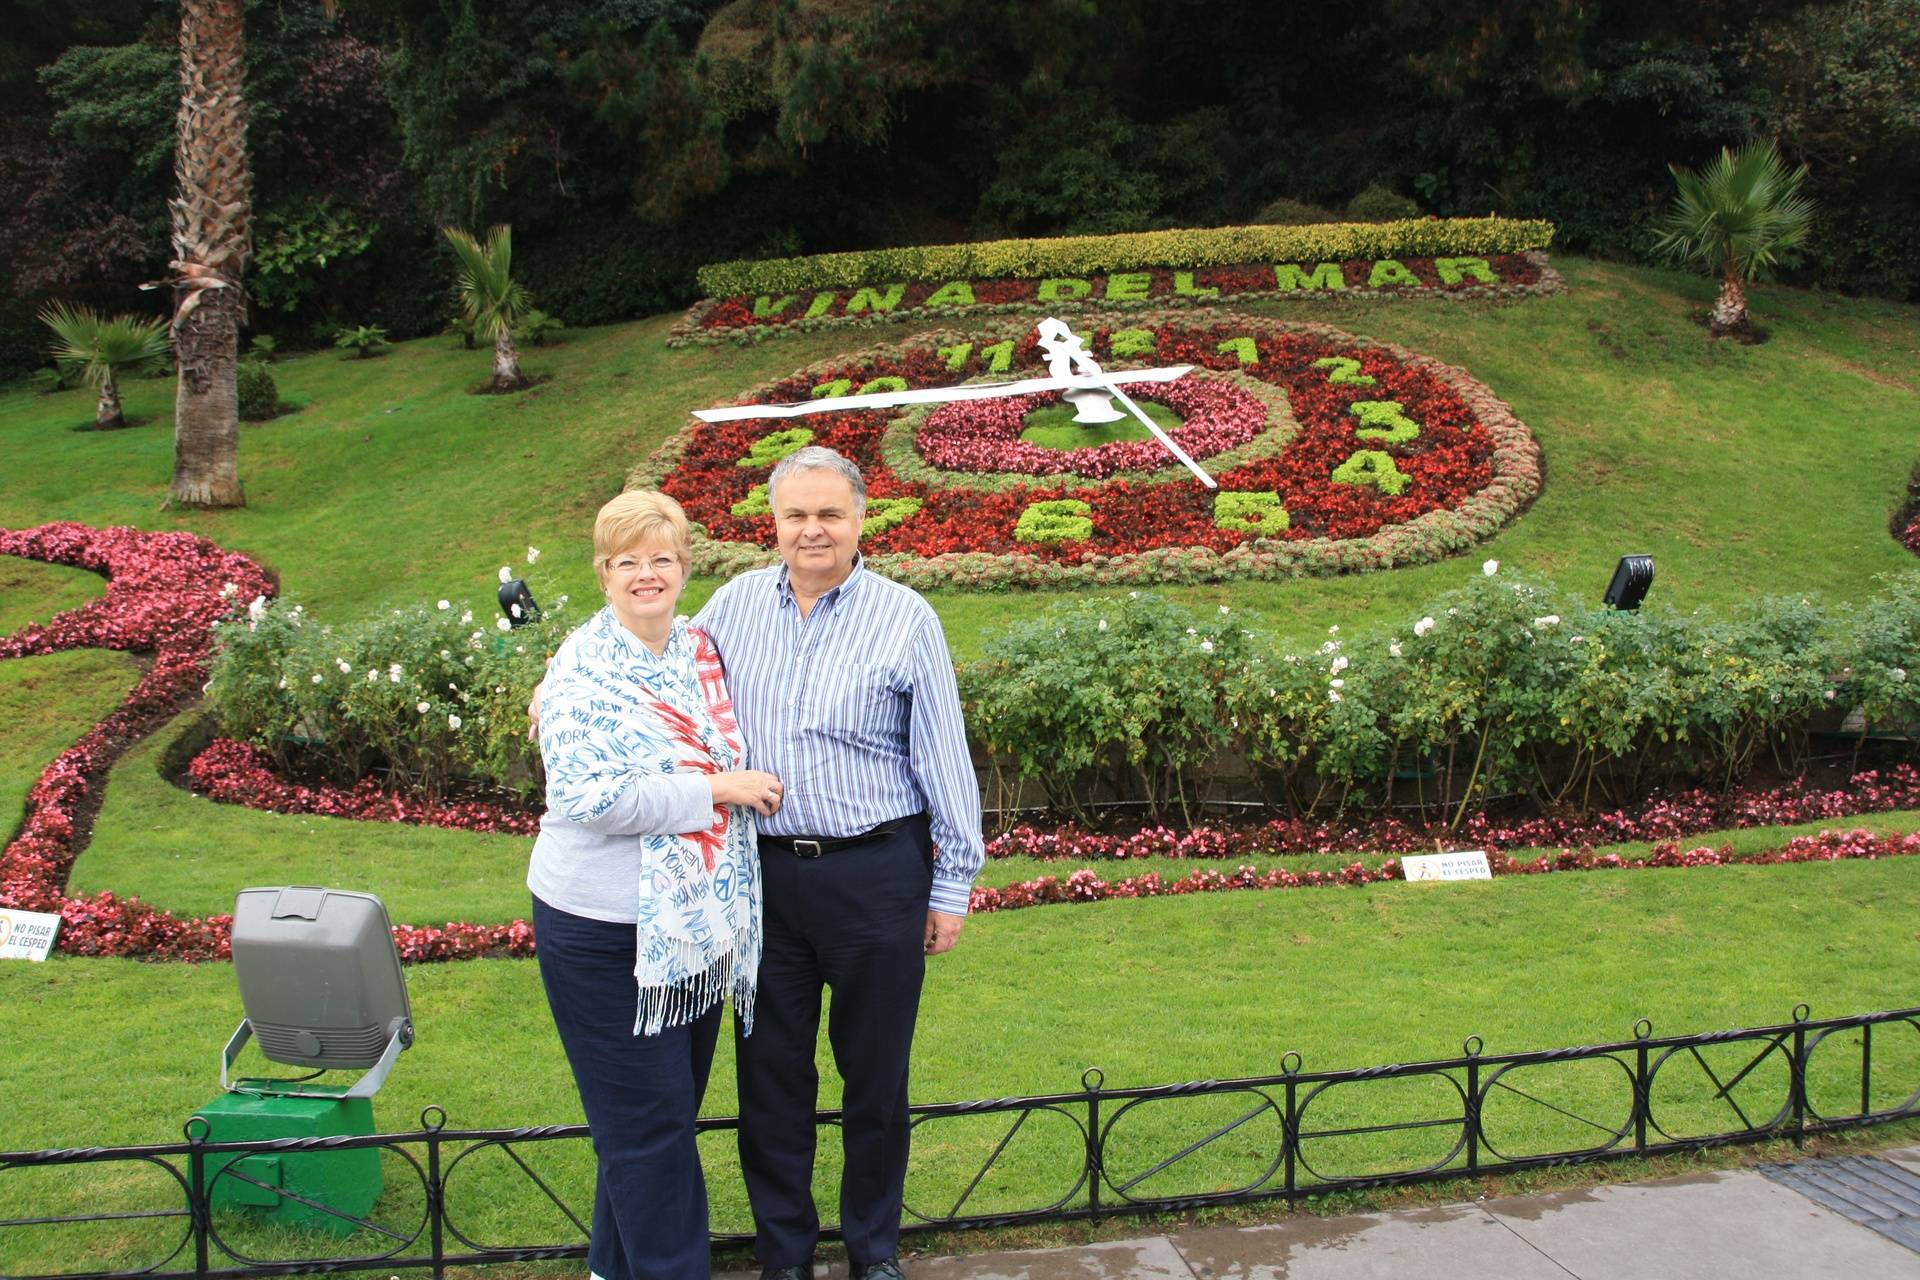 Lynda and Randy with floral clock in Valparaiso, Chili